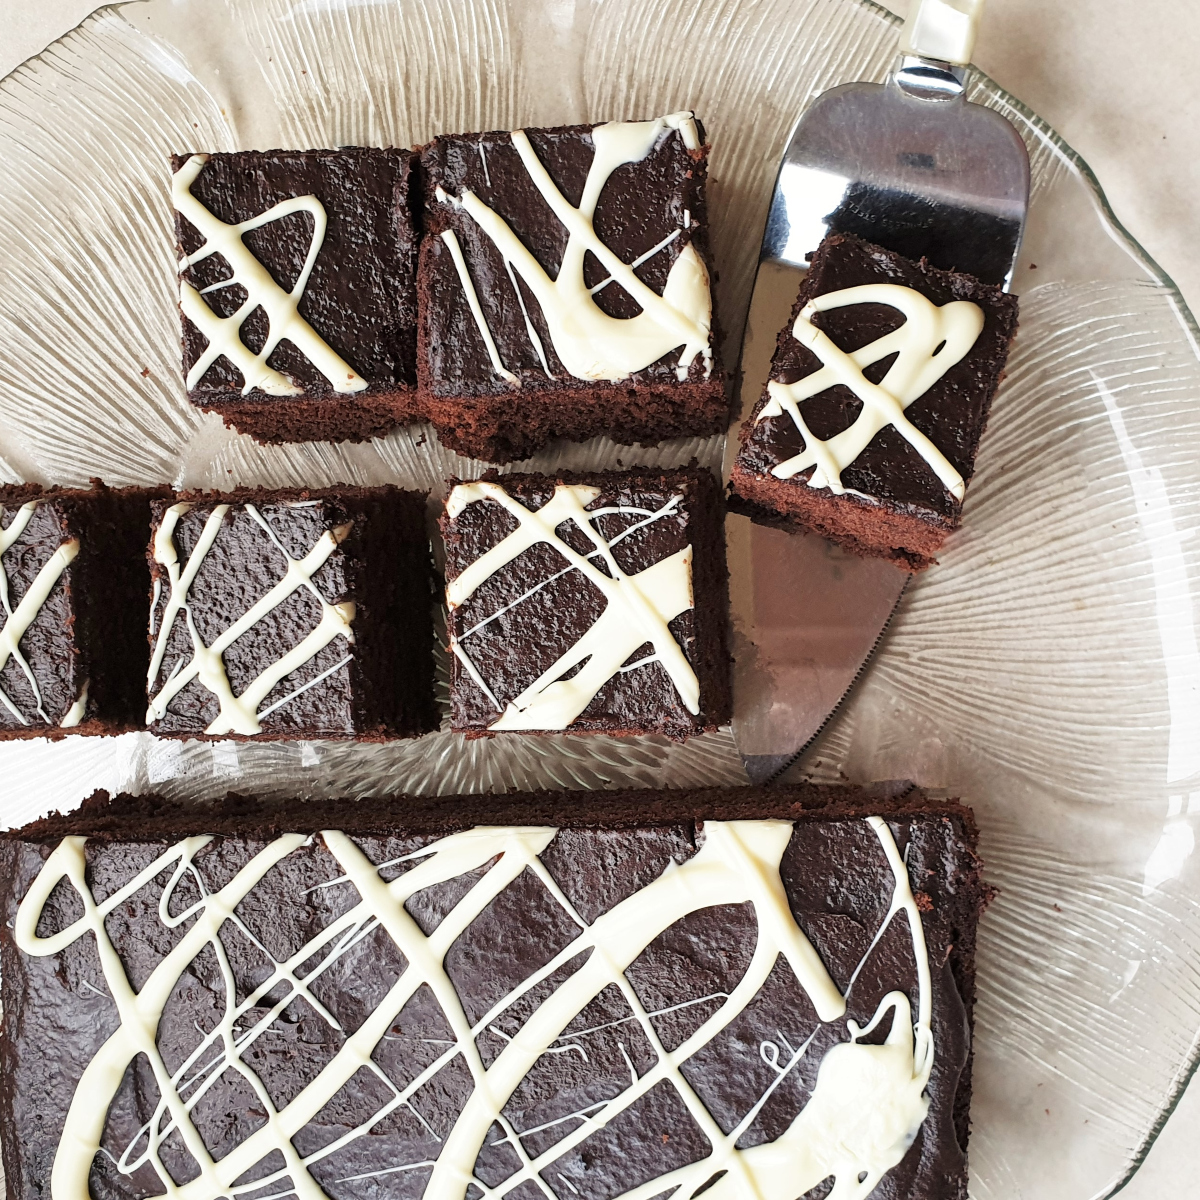 Overhead shot of squares of chocolate cake.